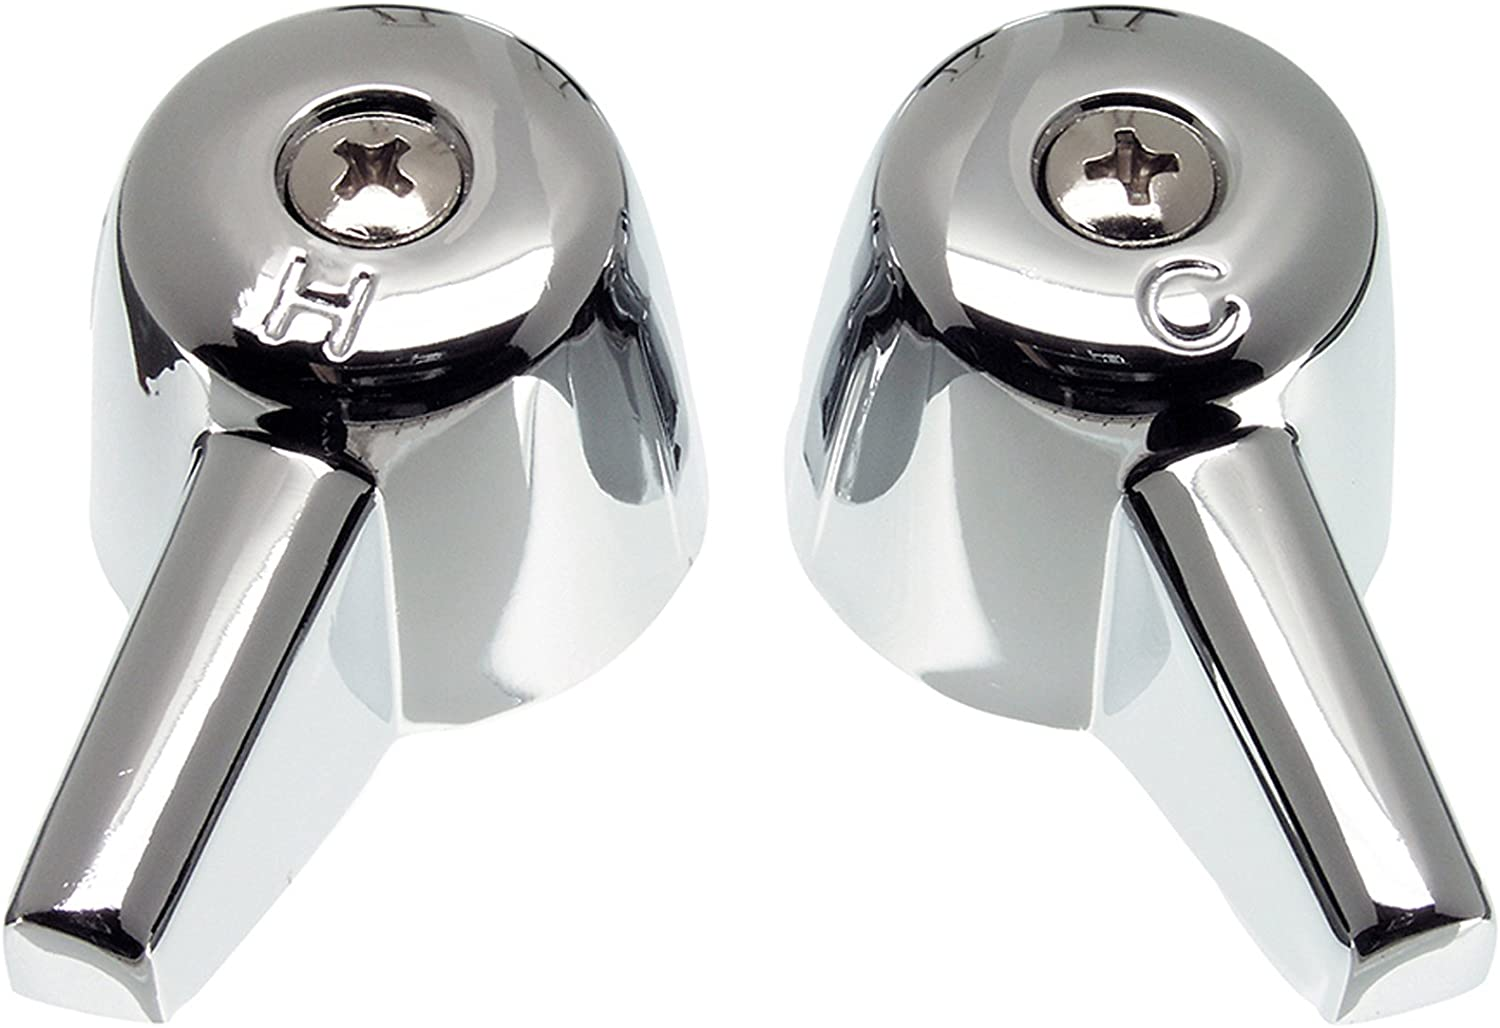 Danco Central Brass Cheap mail order sales Pair of 80401 Finally resale start Handles Chrome Faucet